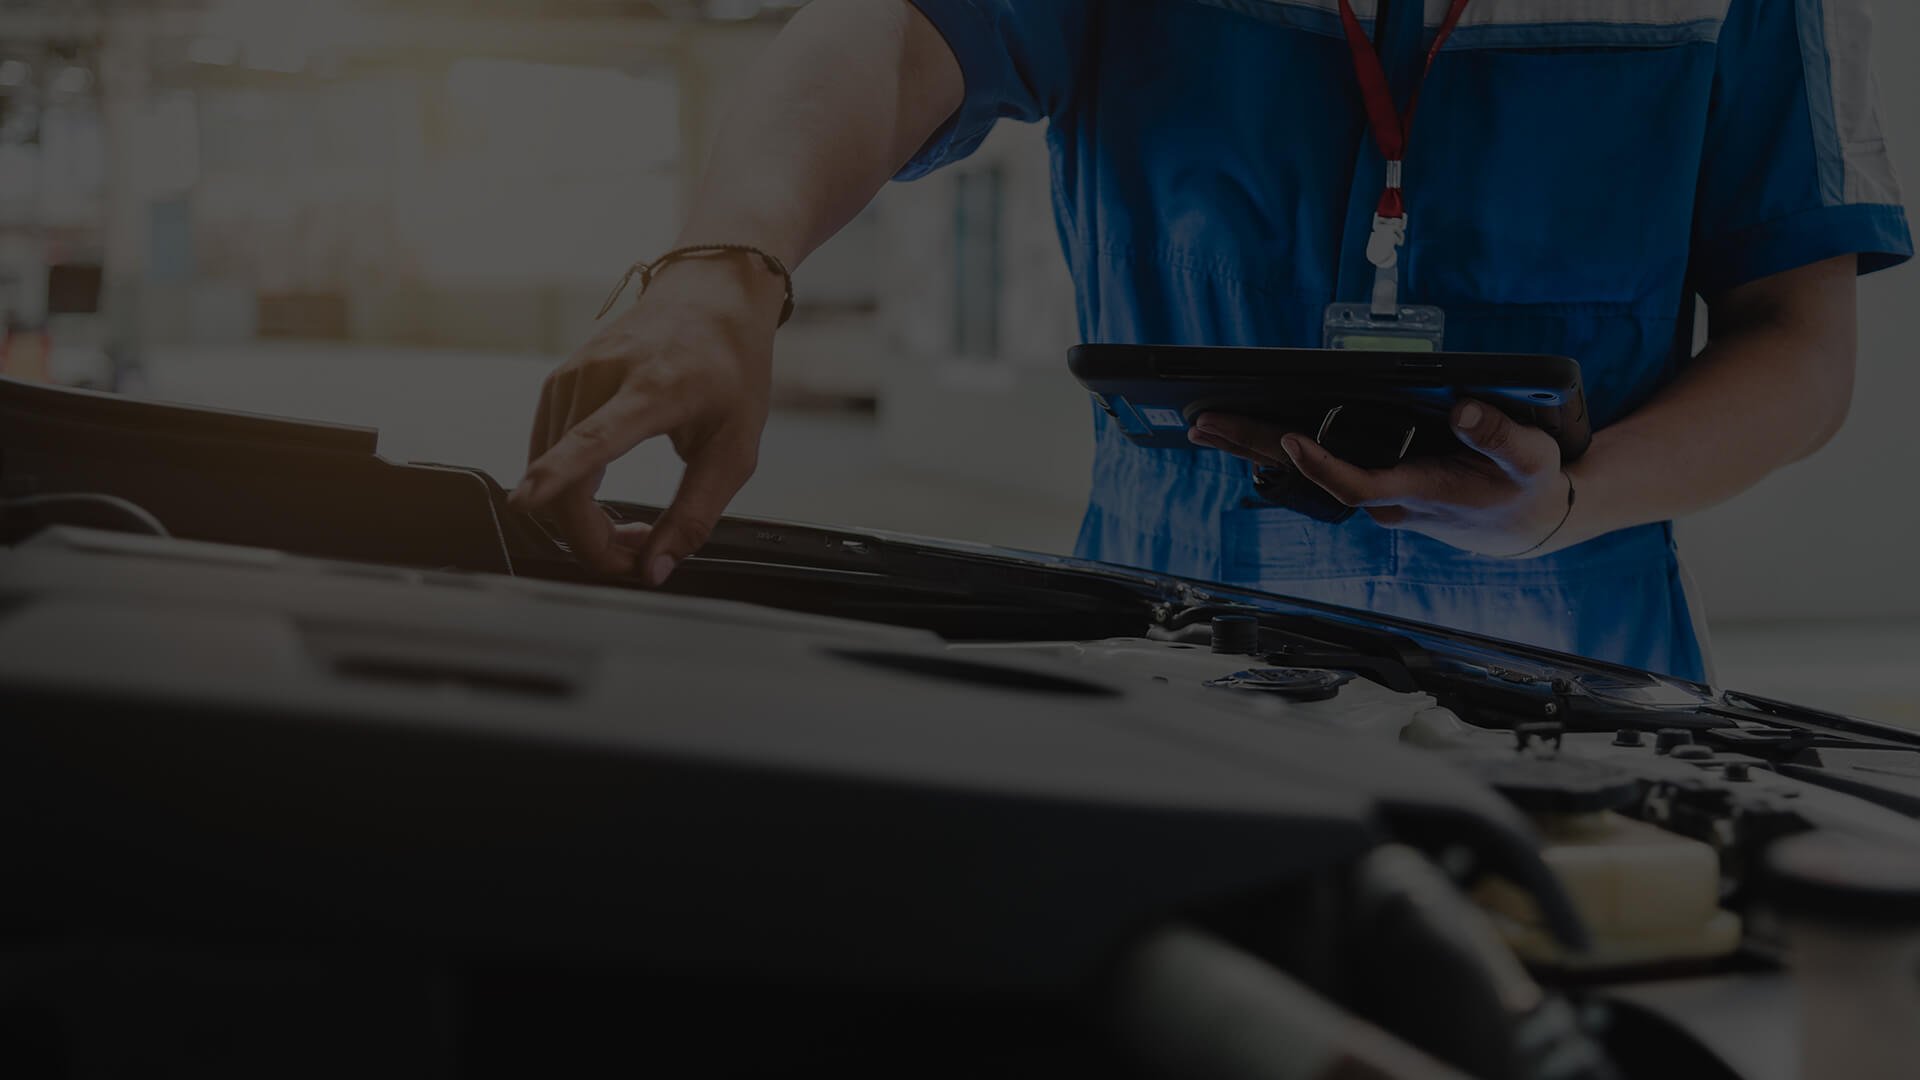 Total 360 Vehicle Reconditioning Center Paintless Dent Repair, Car Detailing and Car Pet Hair Removal Services